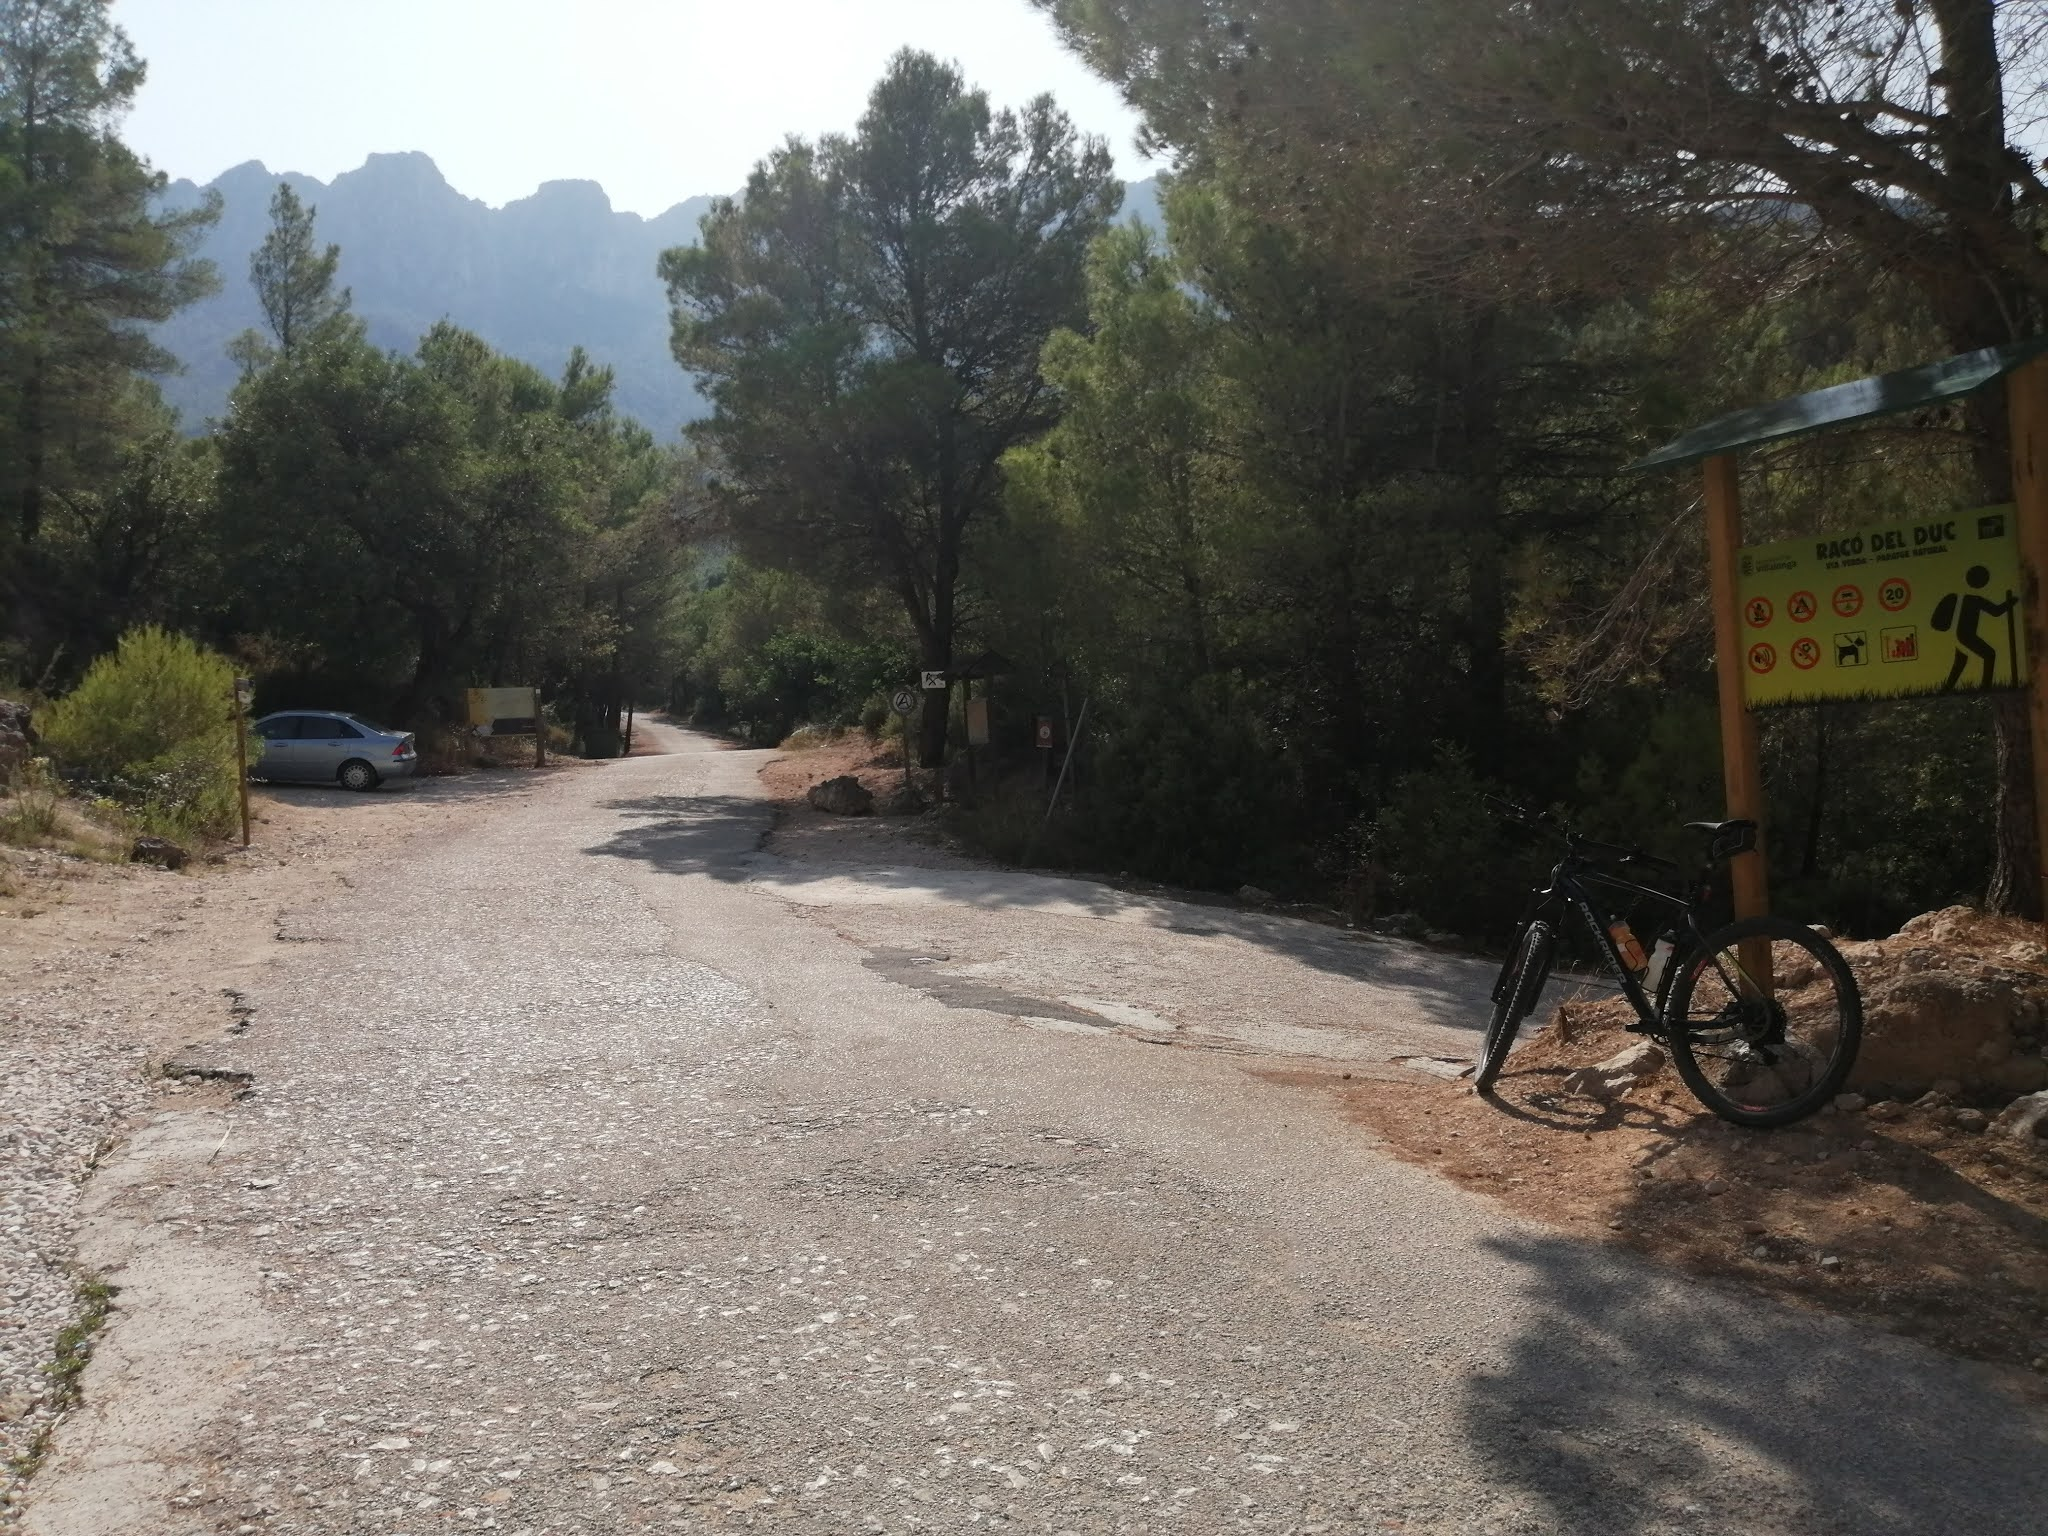 Parking area near Villalonga quarry at the start of the Serpis Greenway